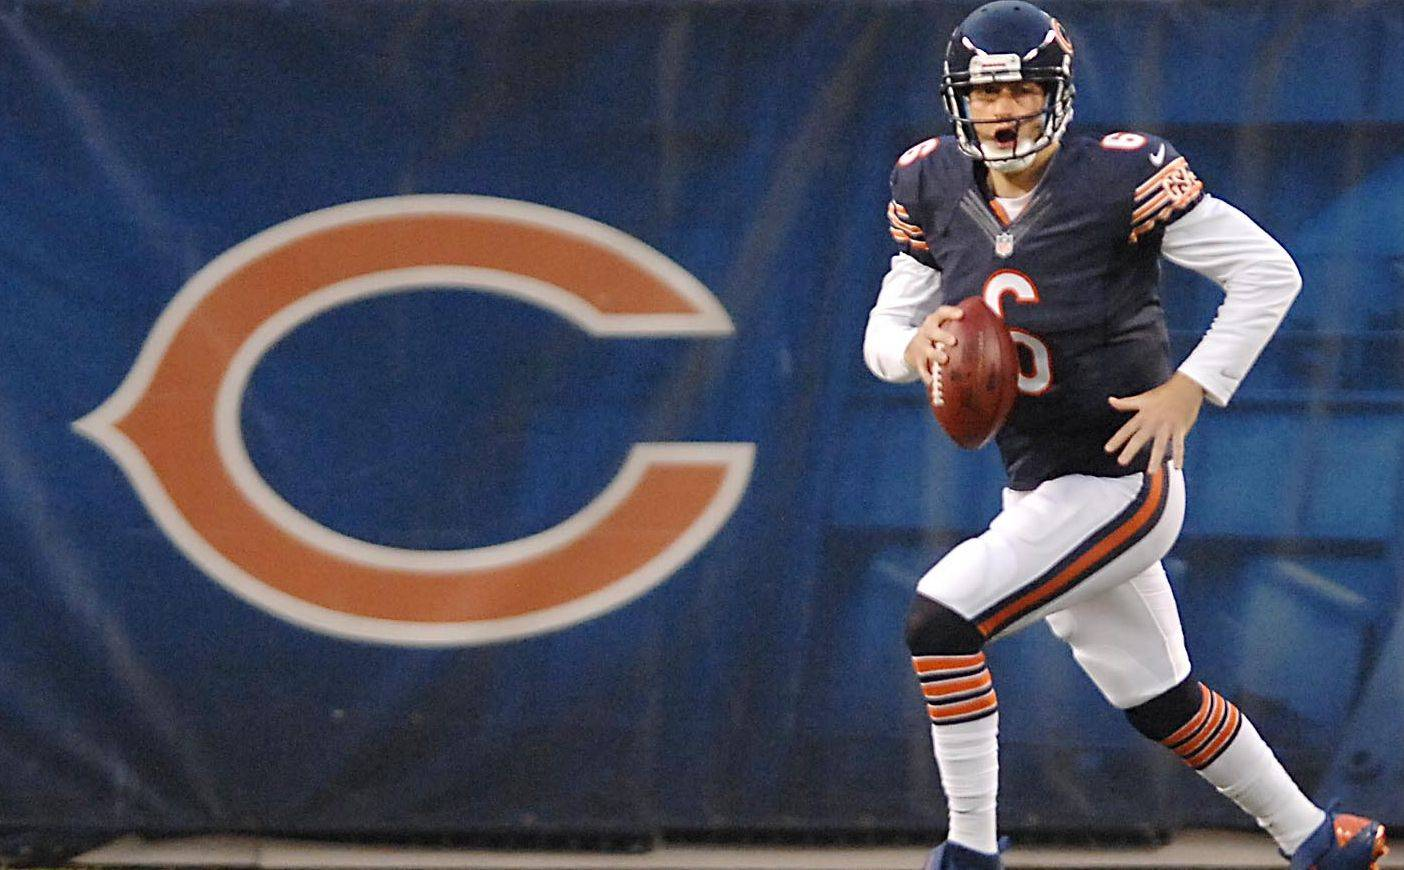 With a healthy Jay Cutler at quarterback and a favorable schedule, the Bears have a shot at the playoffs this season.